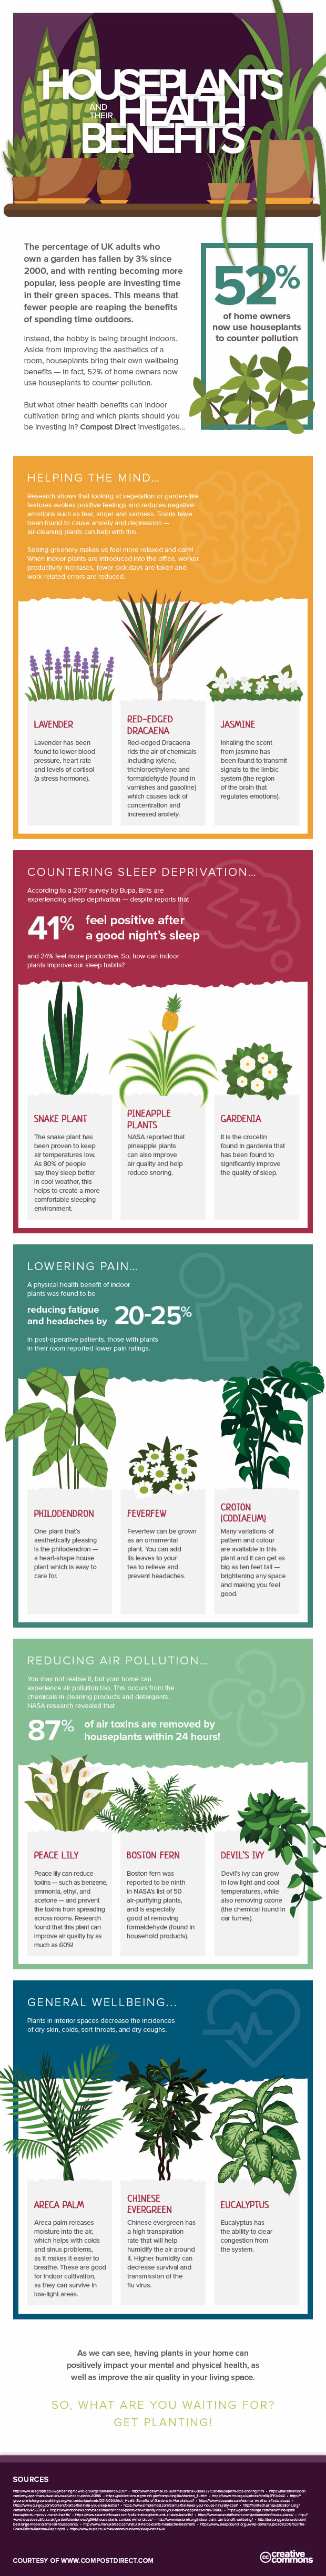 infographic - houseplants and their health benefits